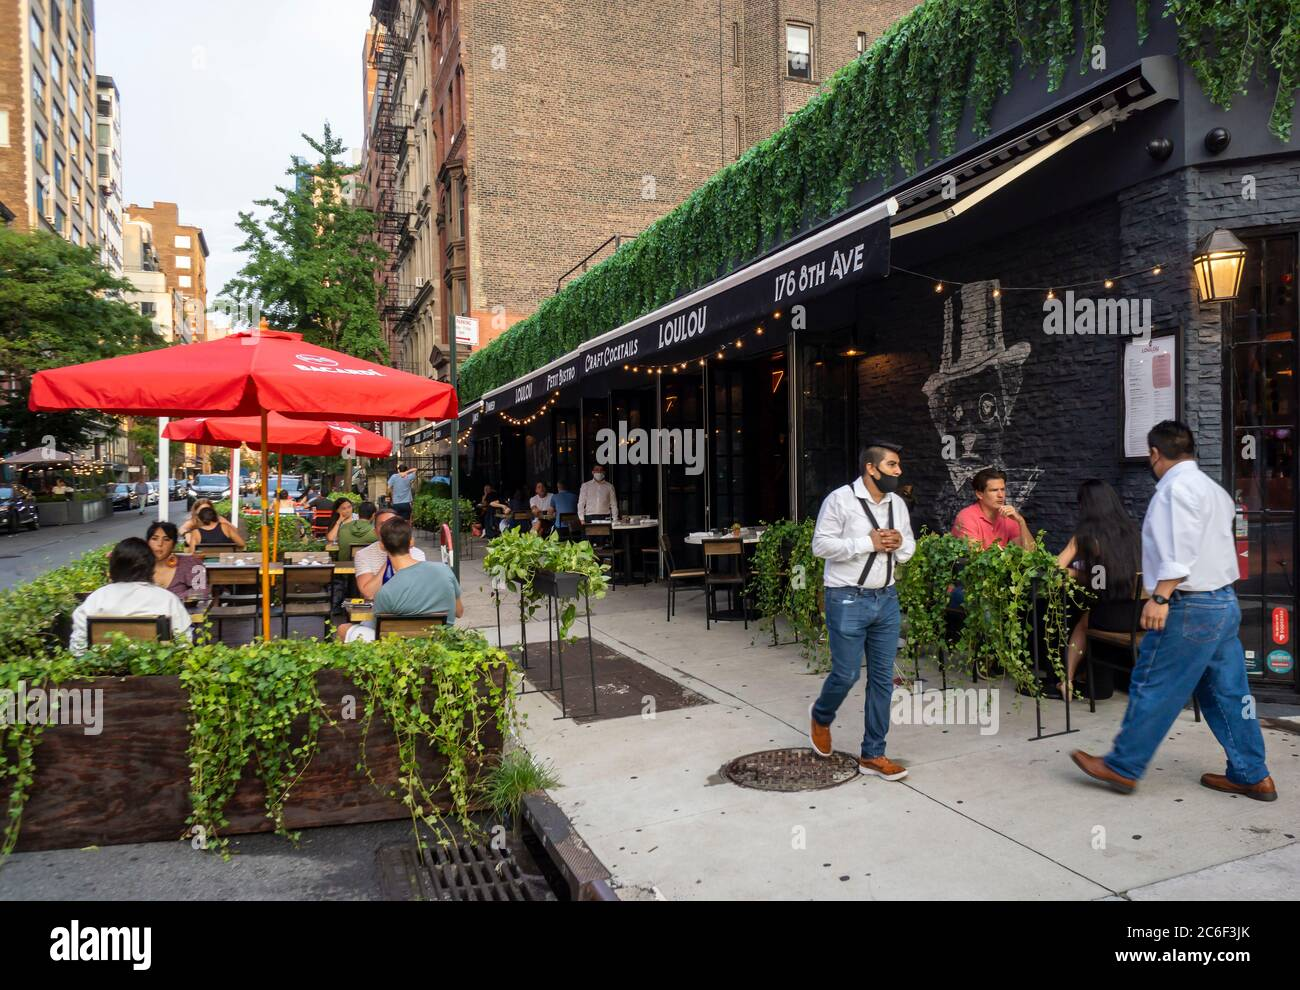 Outdoor dining at a restaurant in the Chelsea neighborhood in New York on Monday, July 6, 2020. While al fresco dining is now allowed, indoor dining as part of the Phase 3 reopening in New York City has been postponed due to coronavirus non-compliance concerns. (© Richard B. Levine) Stock Photo